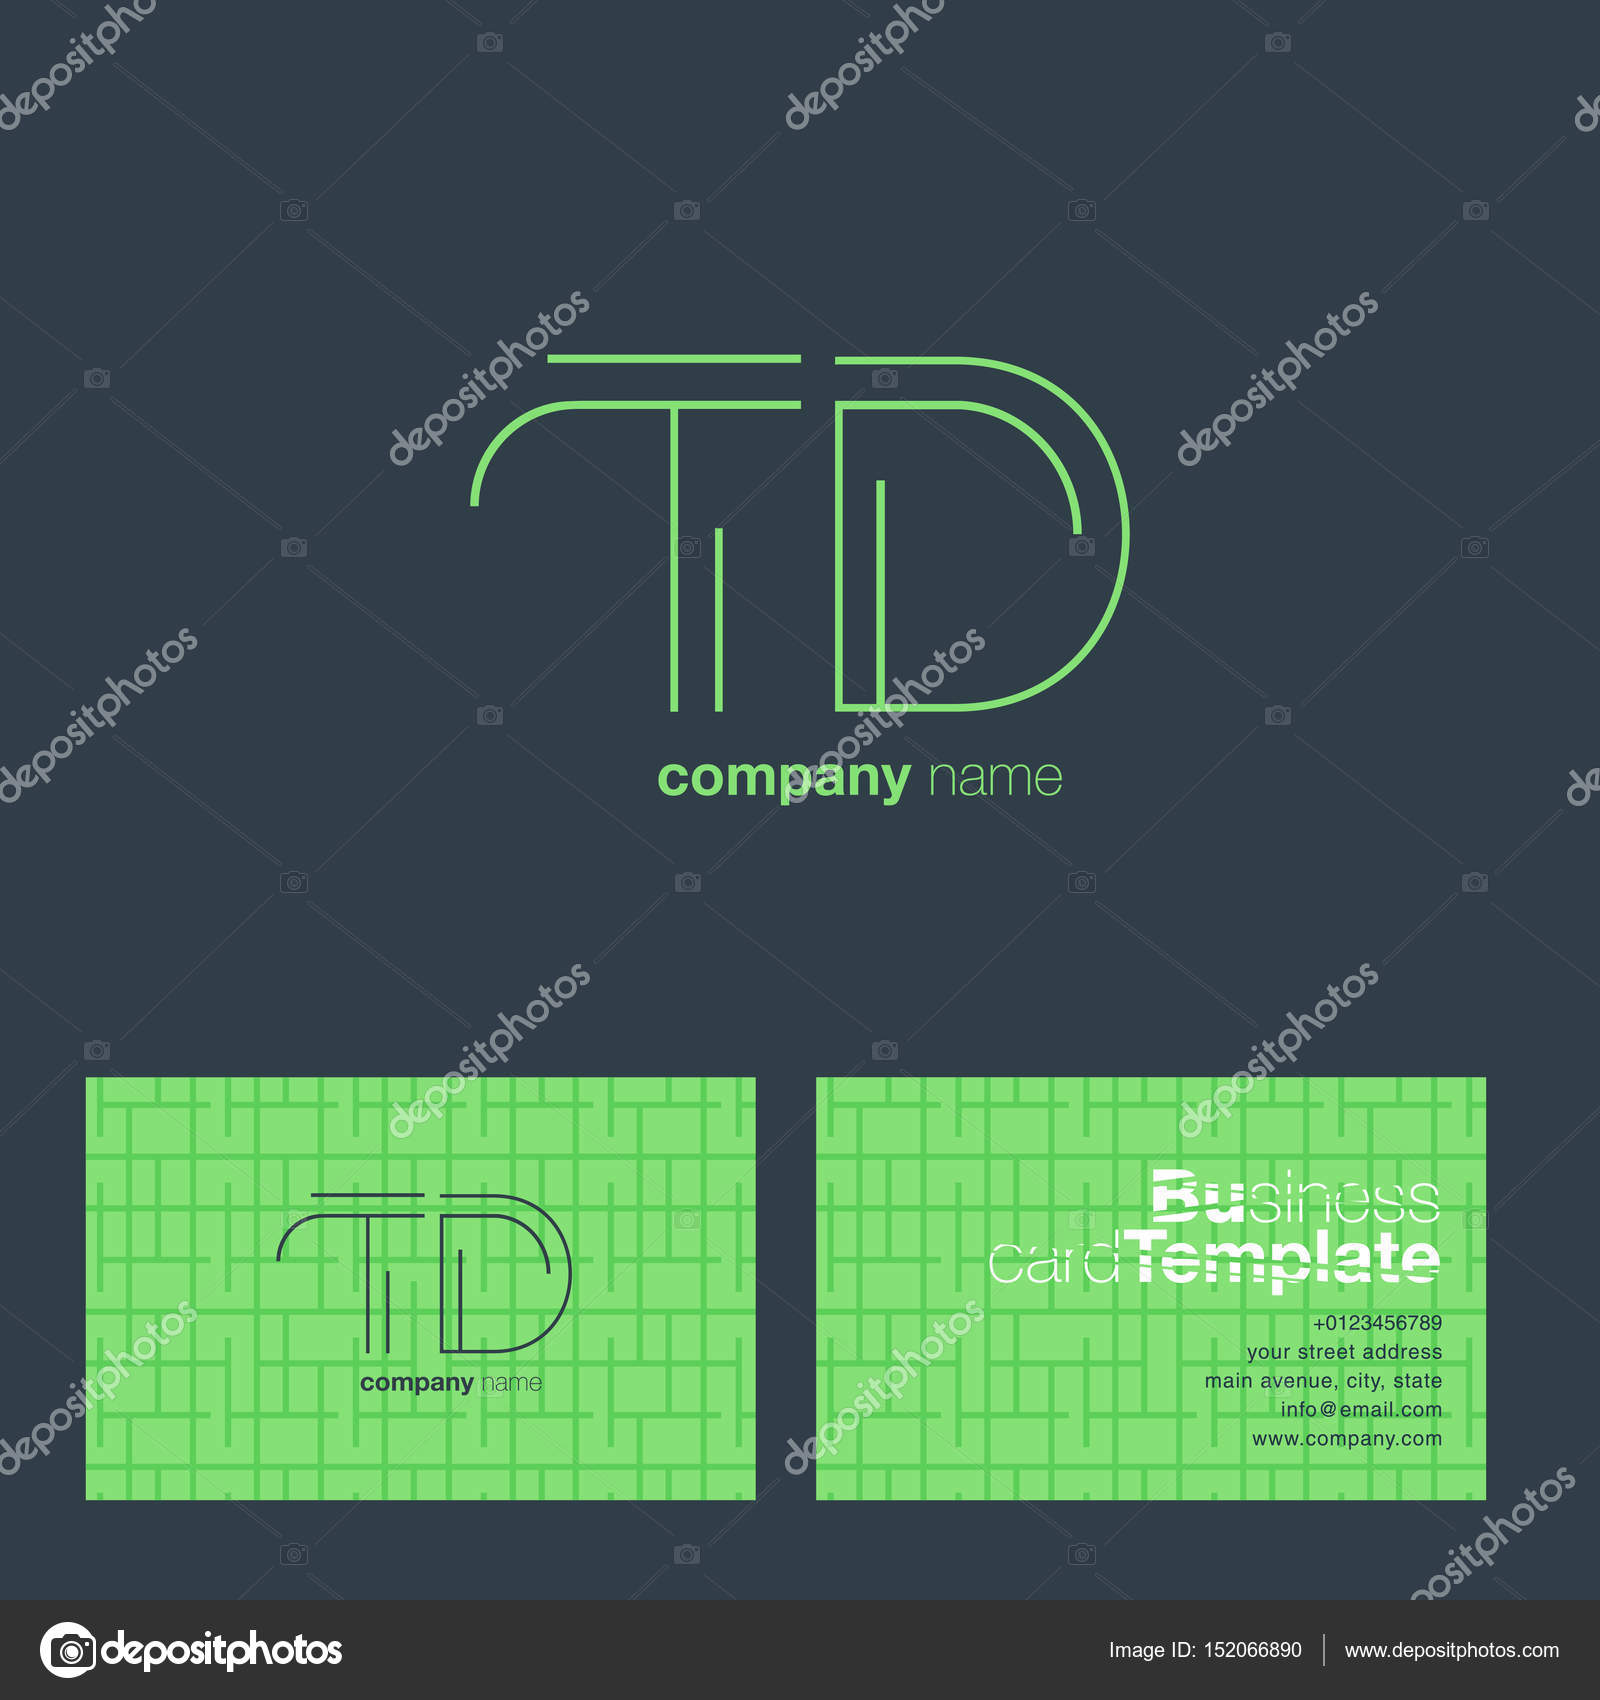 TD Letters Logo Business Card — Stock Vector © brainbistro #152066890